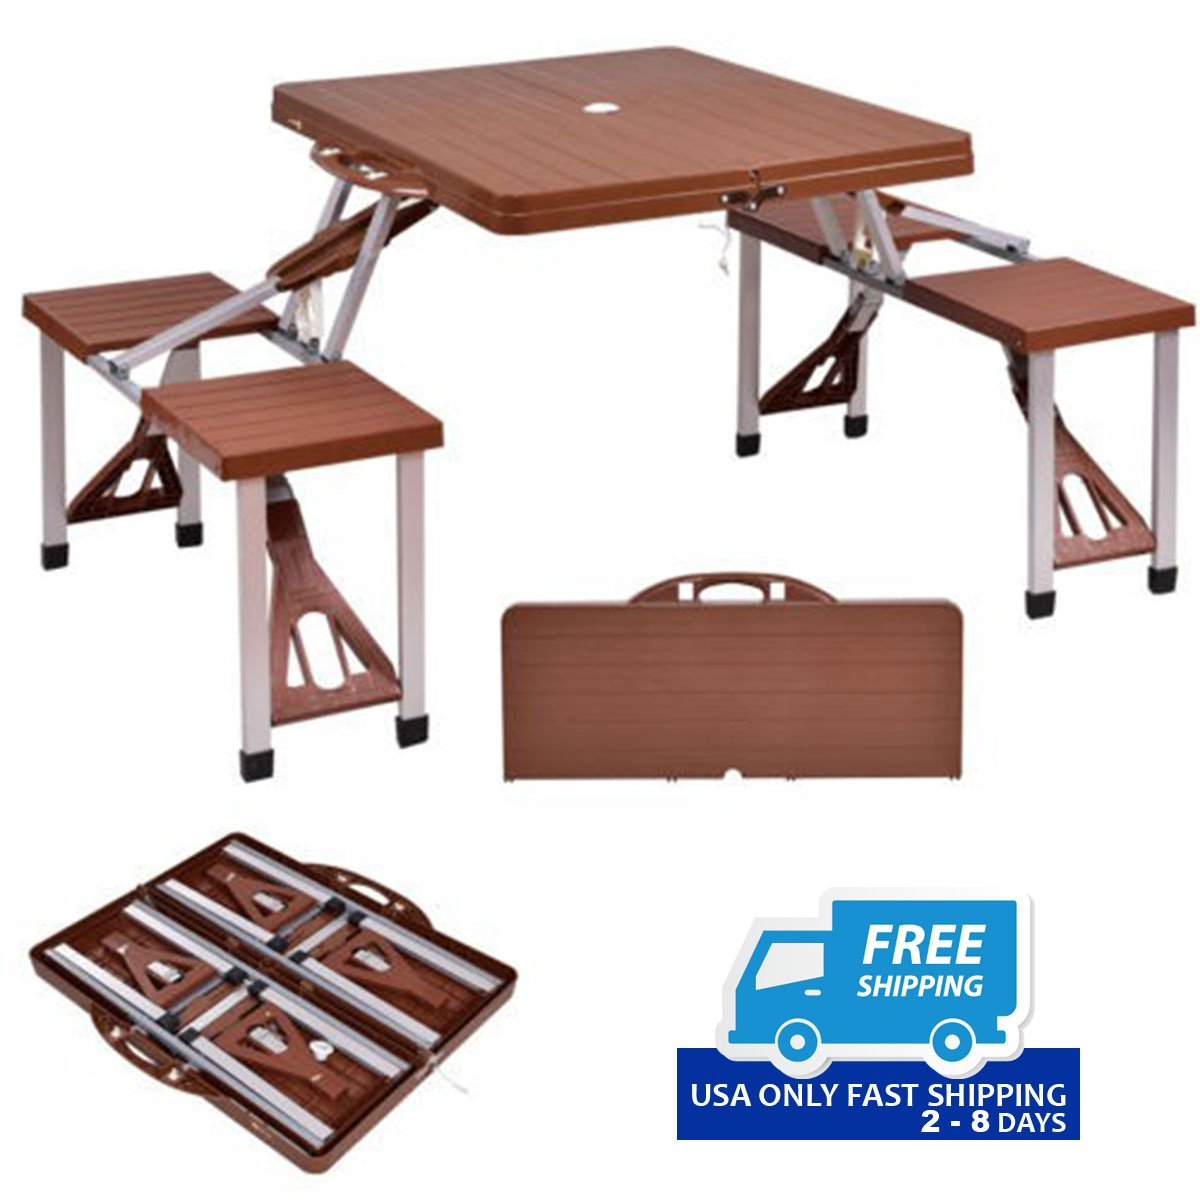 Outdoor foldable aluminum picnic table with bench seats by choice outdoor foldable aluminum picnic table with bench seats watchthetrailerfo